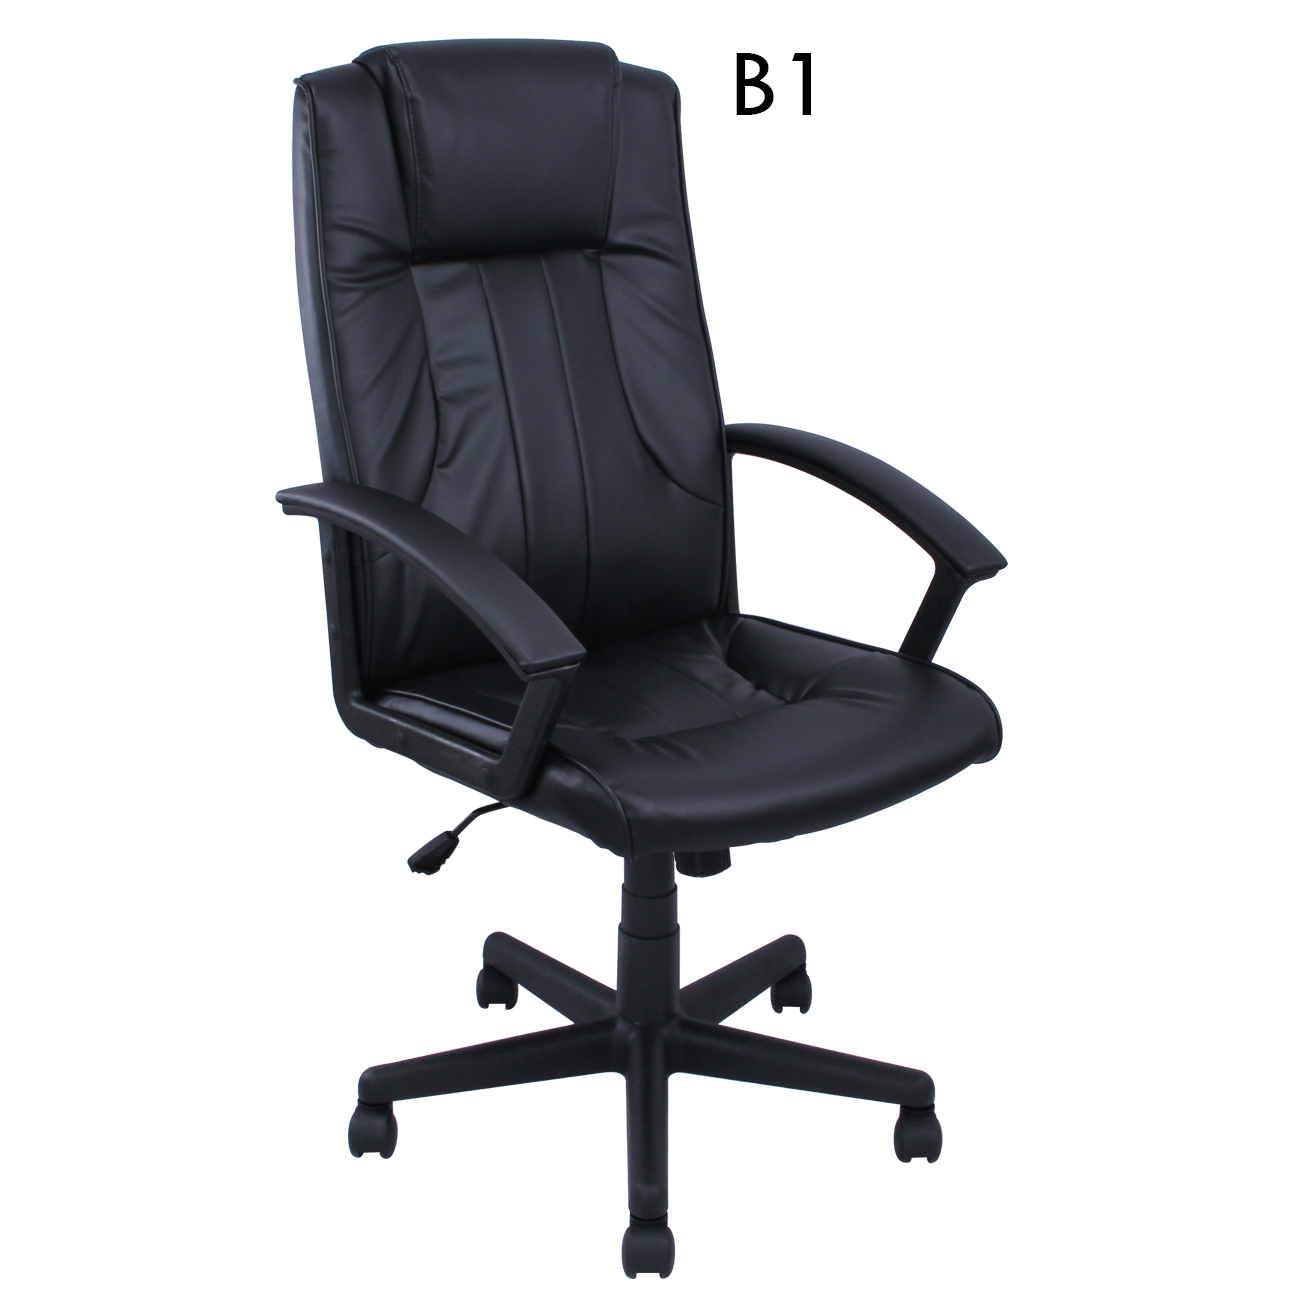 Comfortable Computer Chairs High Back Pu Leather Executive Ergonomic Office Chair Desk